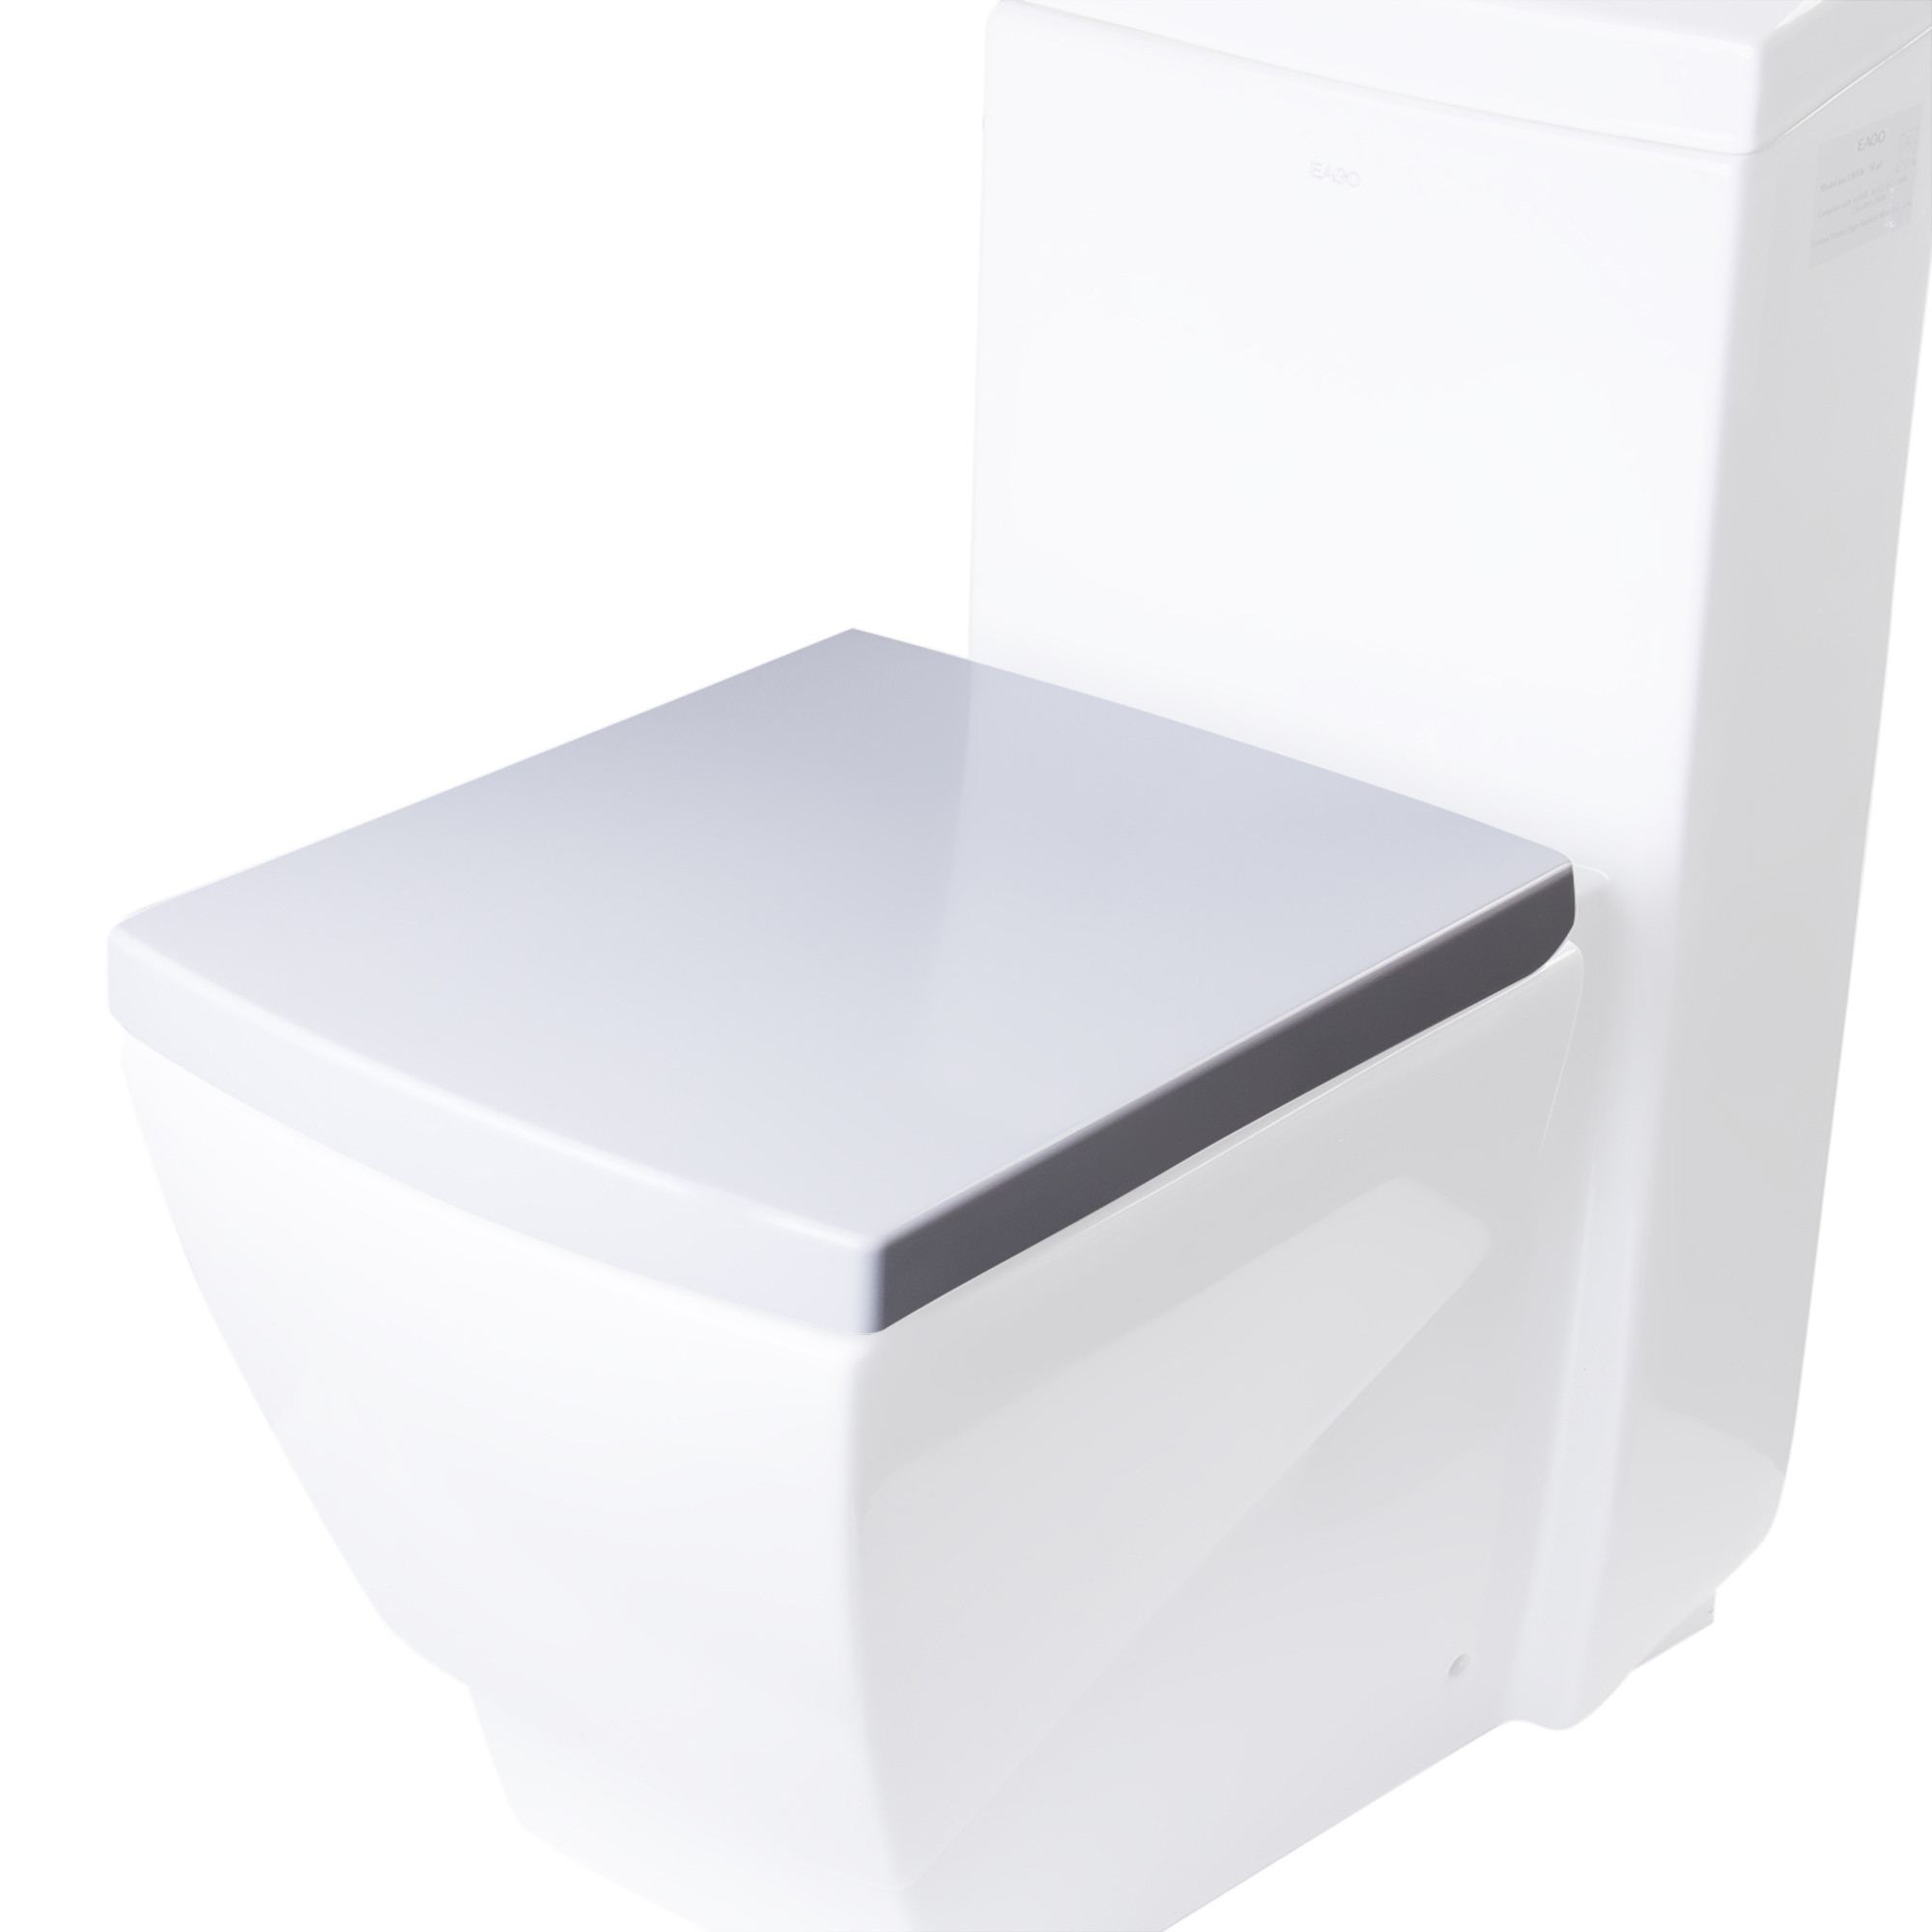 EAGO R-336SEAT Replacement Soft Closing Toilet Seat for TB336